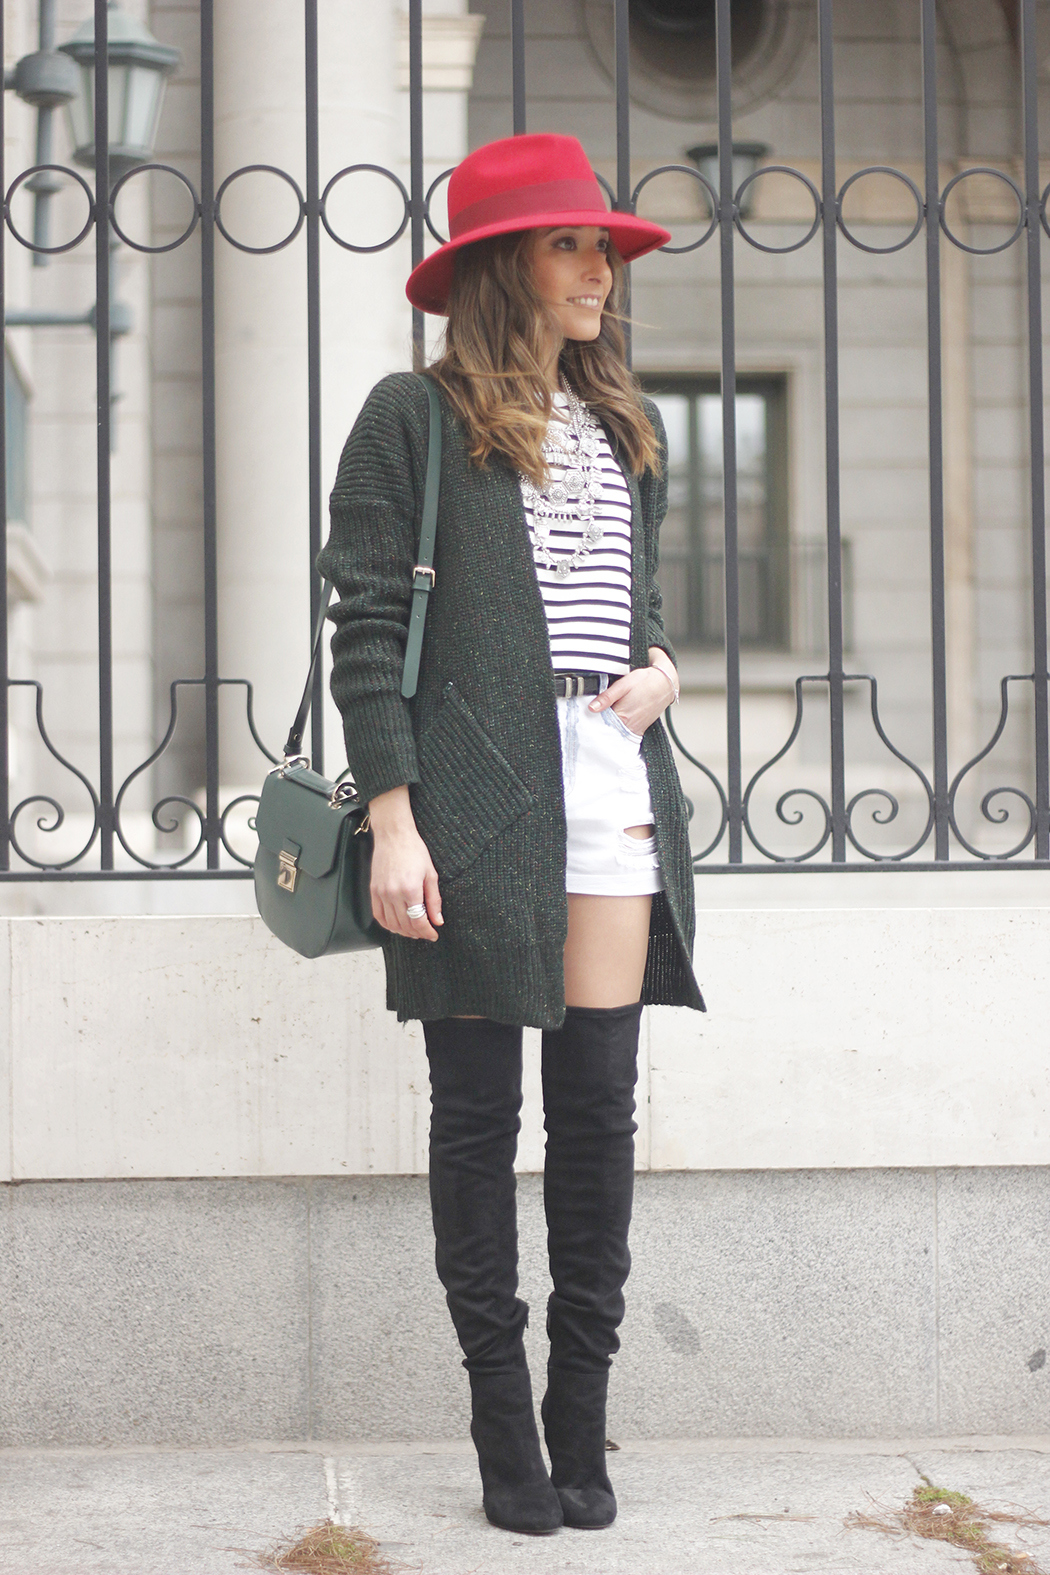 Green Cardigan sheinside denim shorts over the knee boots red hat uterqüe04